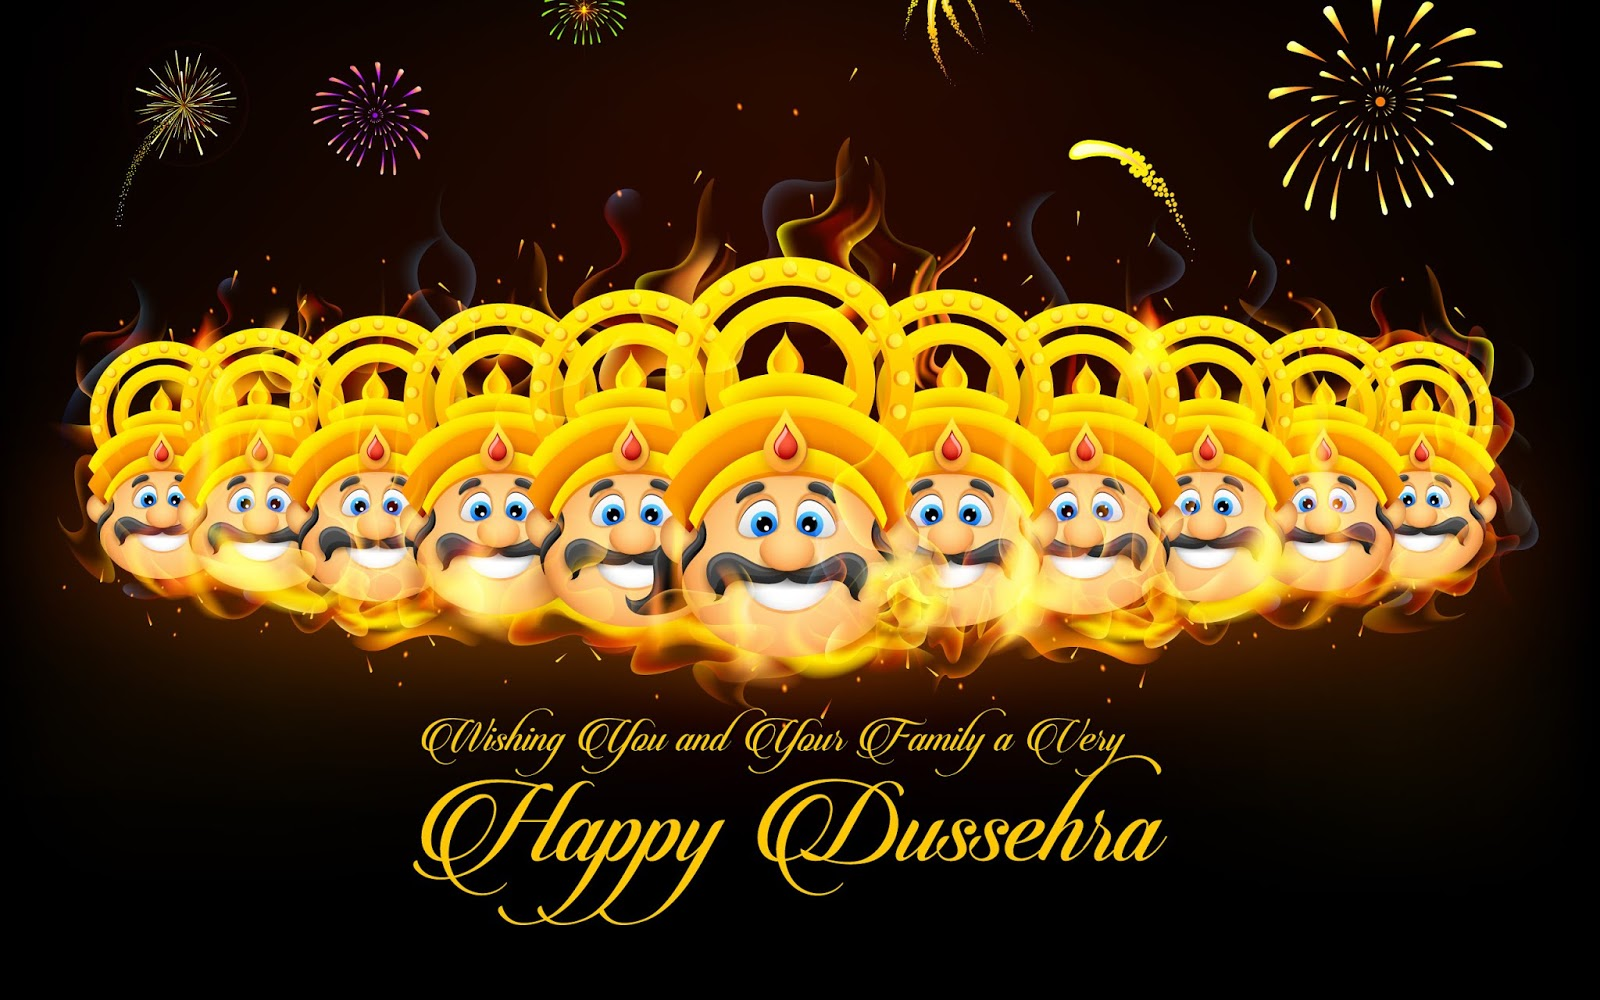 2020 happy dussehra images wallpapers and greetings festivals on web 2020 happy dussehra images wallpapers